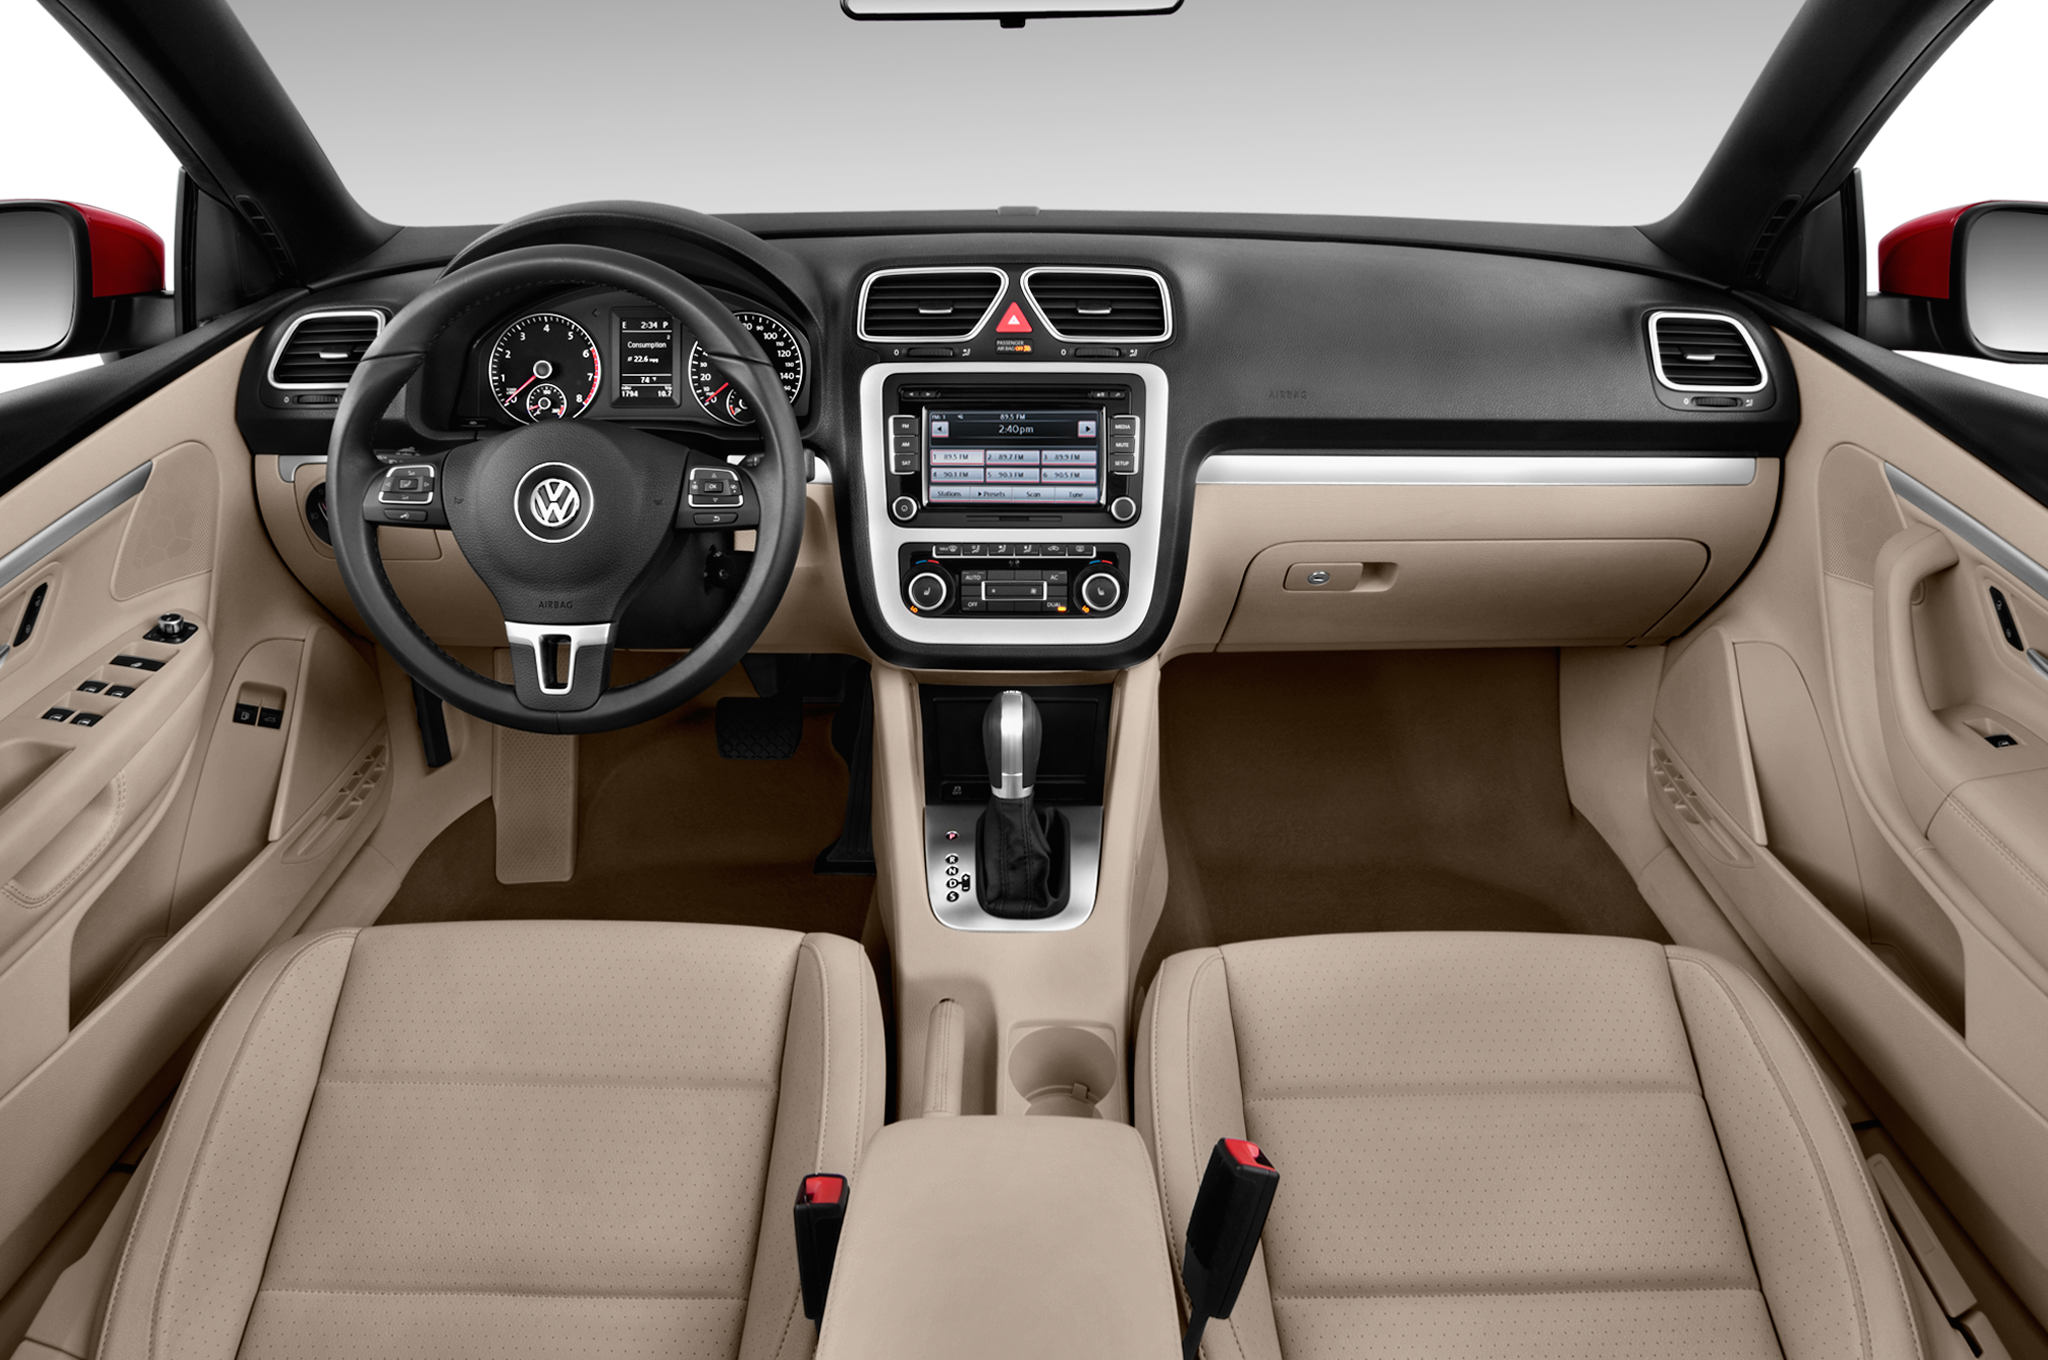 2012 Volkswagen Eos Komfort - Editors' Notebook - Automobile Magazine